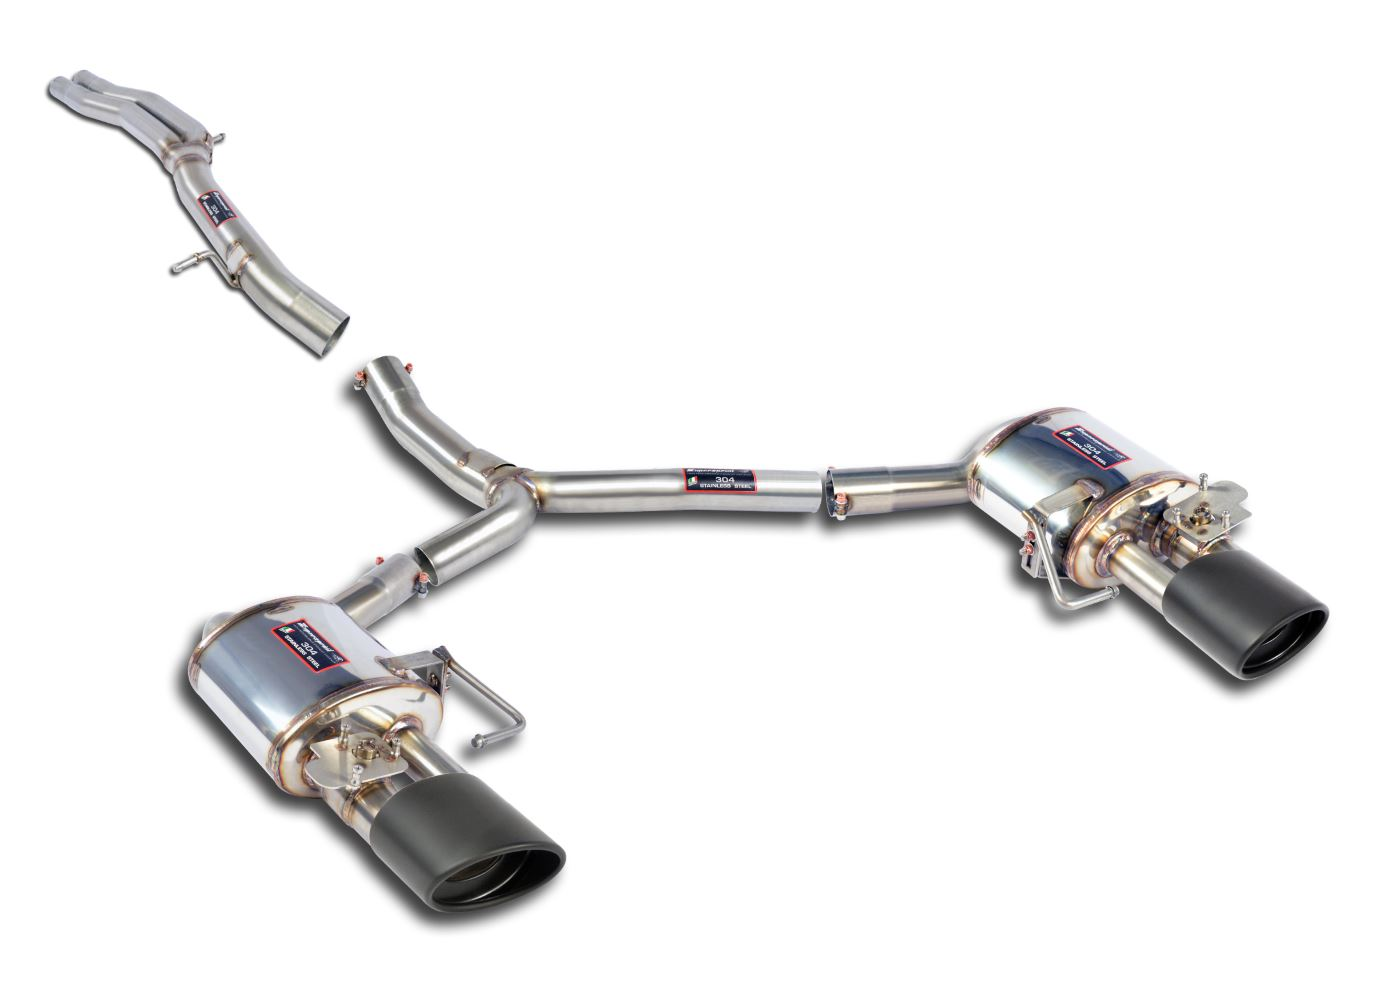 Audi RS4 RS5 B9 Cat-back valve exhaust unresonated w/ black tips